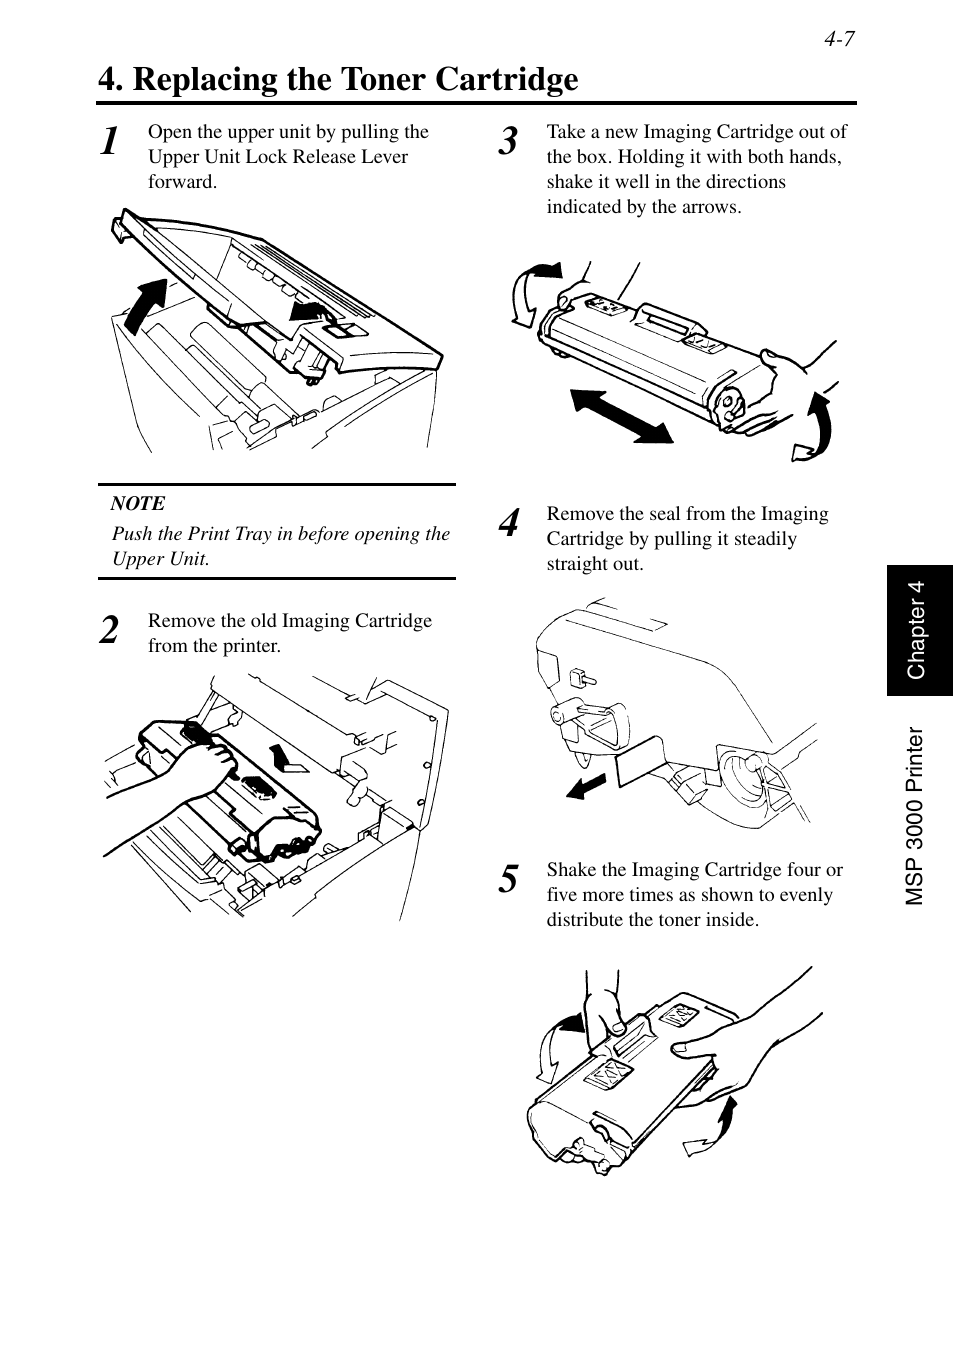 medium resolution of replacing the toner cartridge replacing the toner cartridge 7 konica minolta msp3500 user manual page 101 136